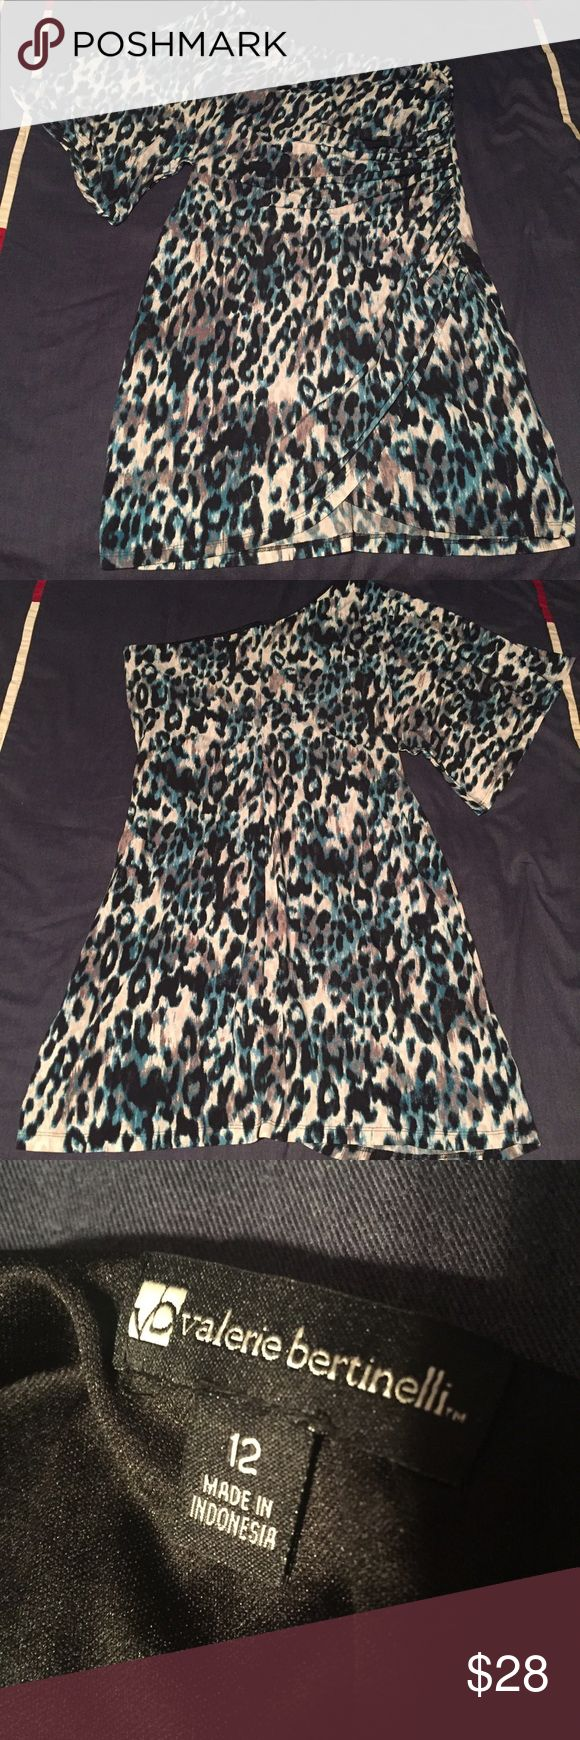 Valerie Bertinelli Cheetah Dress! Cheetah print one-sleeve dress with cream, brown, black, & turquoise. Excellent condition! Dresses Midi